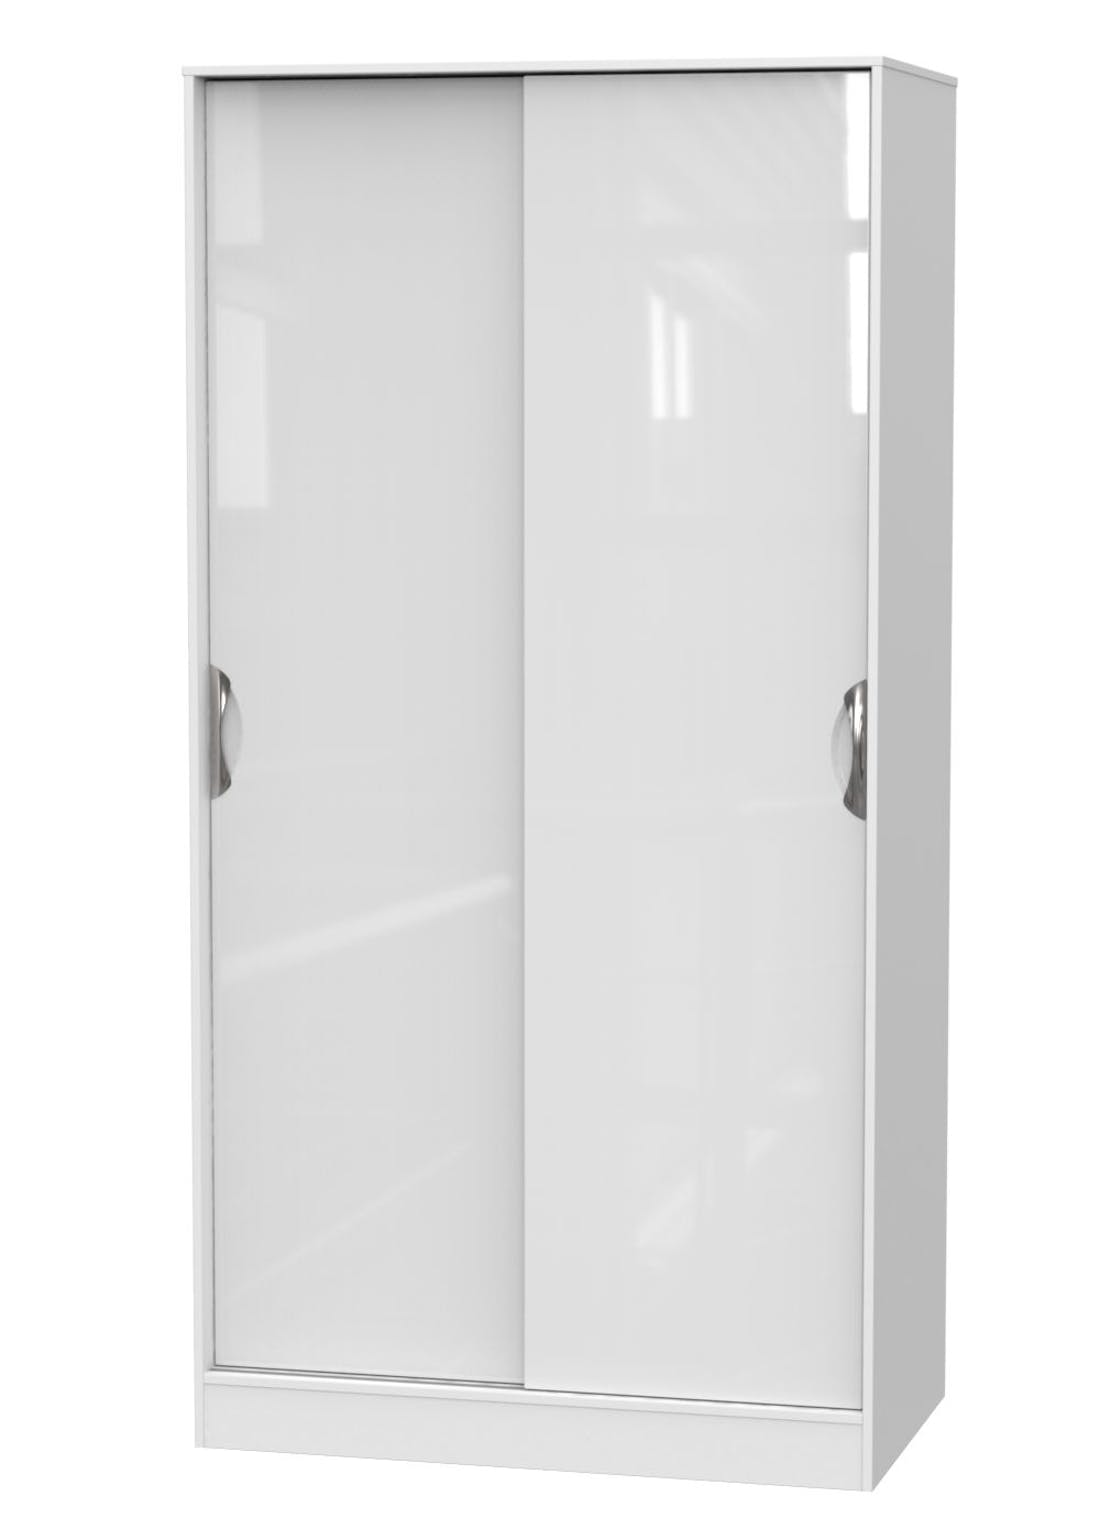 Swift Bordeaux Sliding Door Wardrobe (197.5cm x 100.5cm x 60cm)